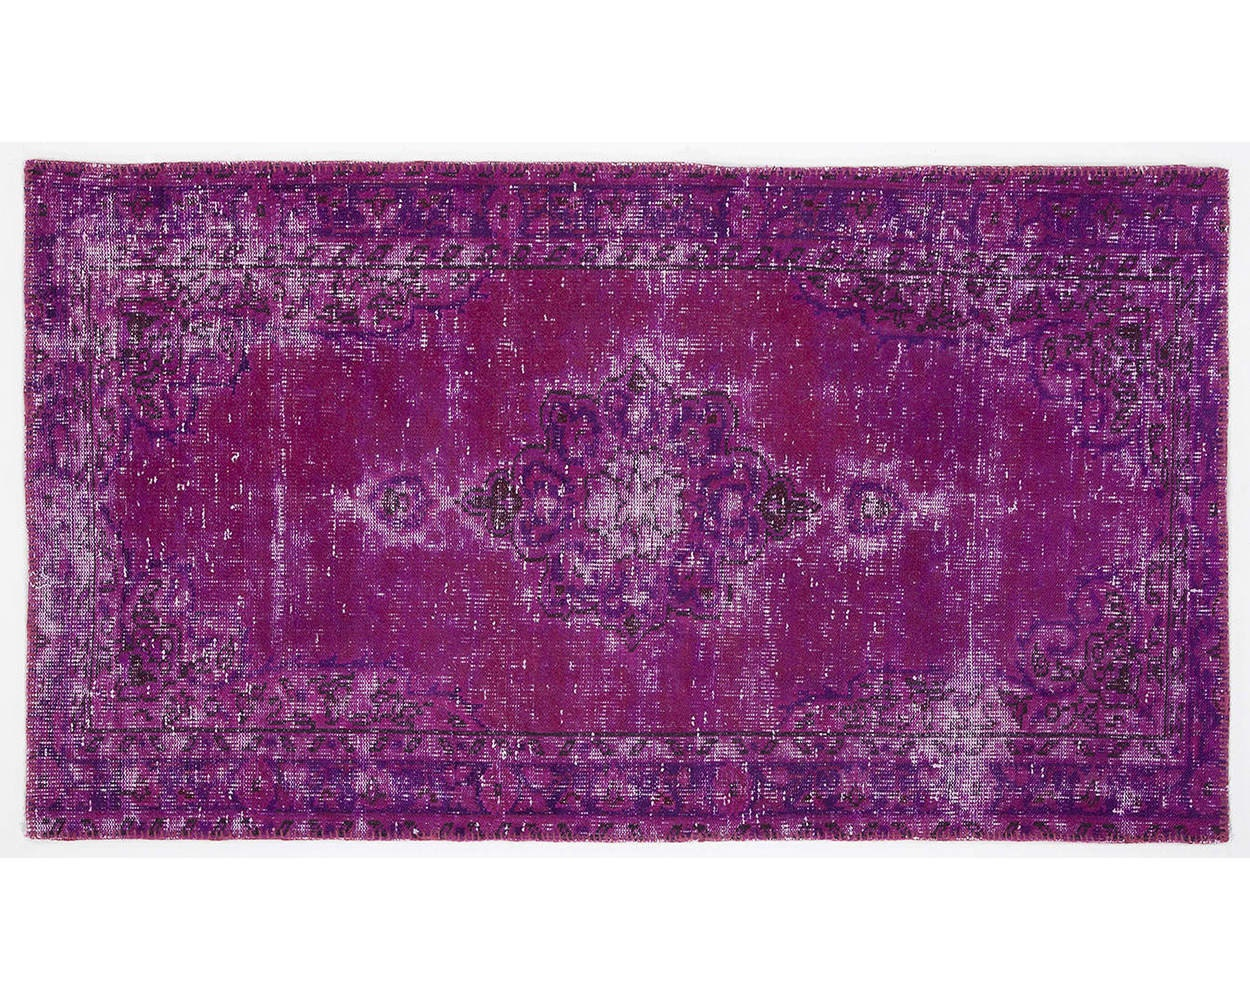 6,1x3,4 ft   187X105 cm   Vintage PURPLE handmade faded-distressed overdyed rug Free shipping (3075) - Apexcarpets